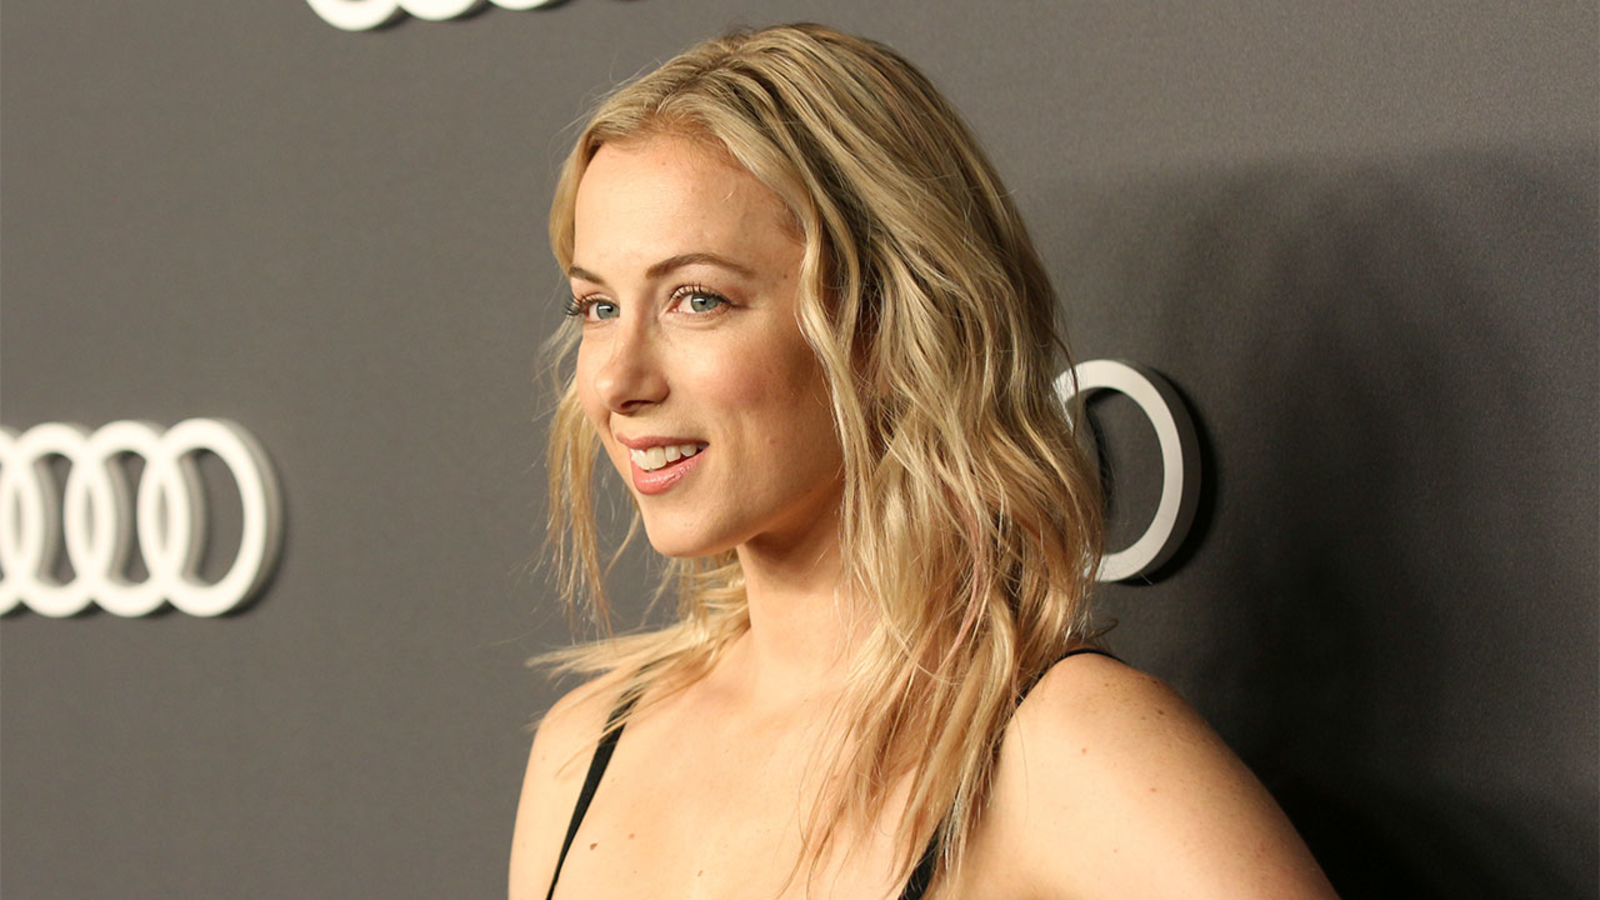 Iliza Shlesinger Landed Spenser Confidential Role After Ignoring Direction Not To Do A Boston Accent Internewscast